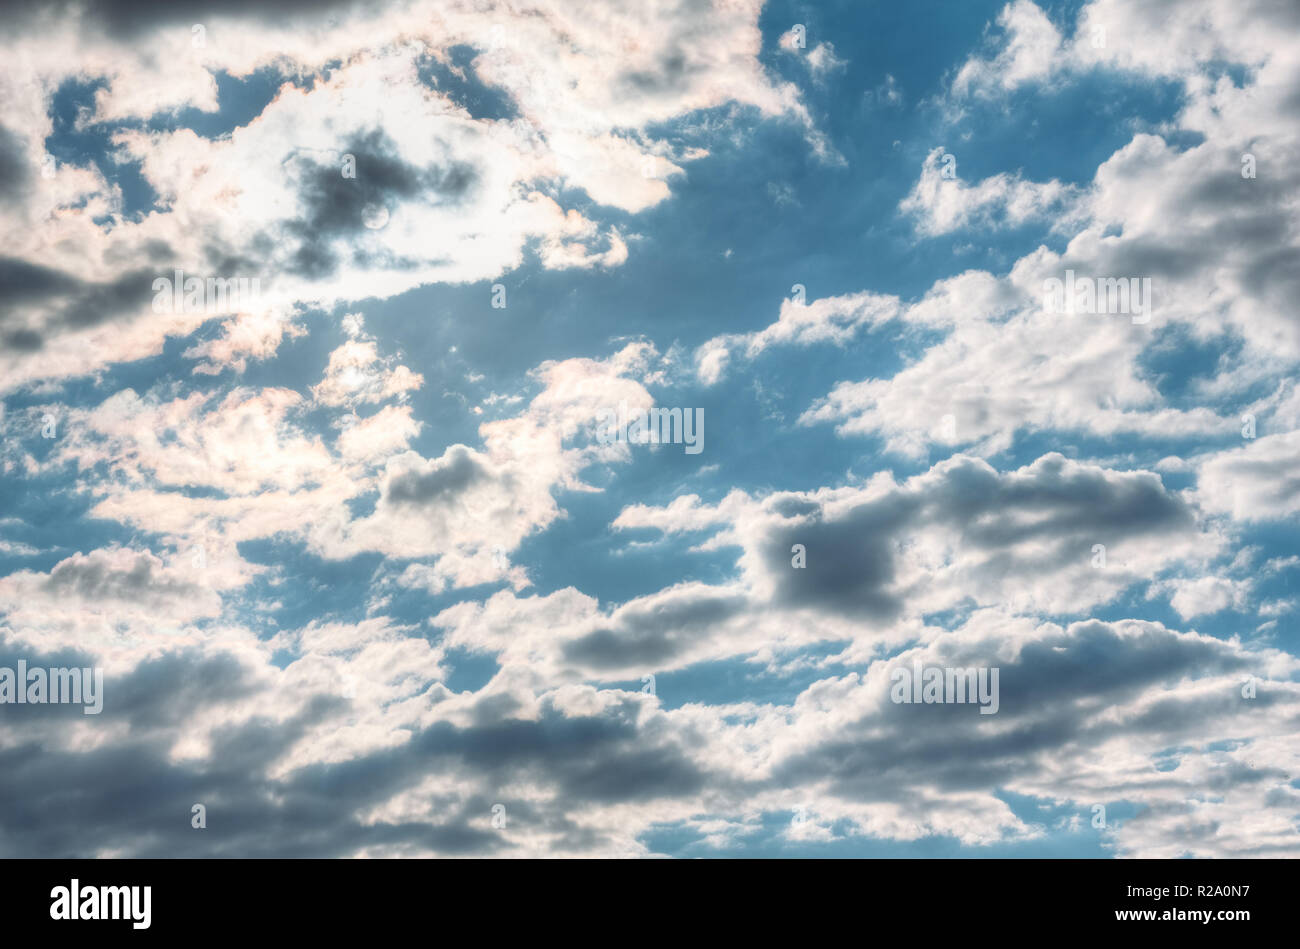 Summer bright sky with cumulus clouds and sun in the clouds - Stock Image